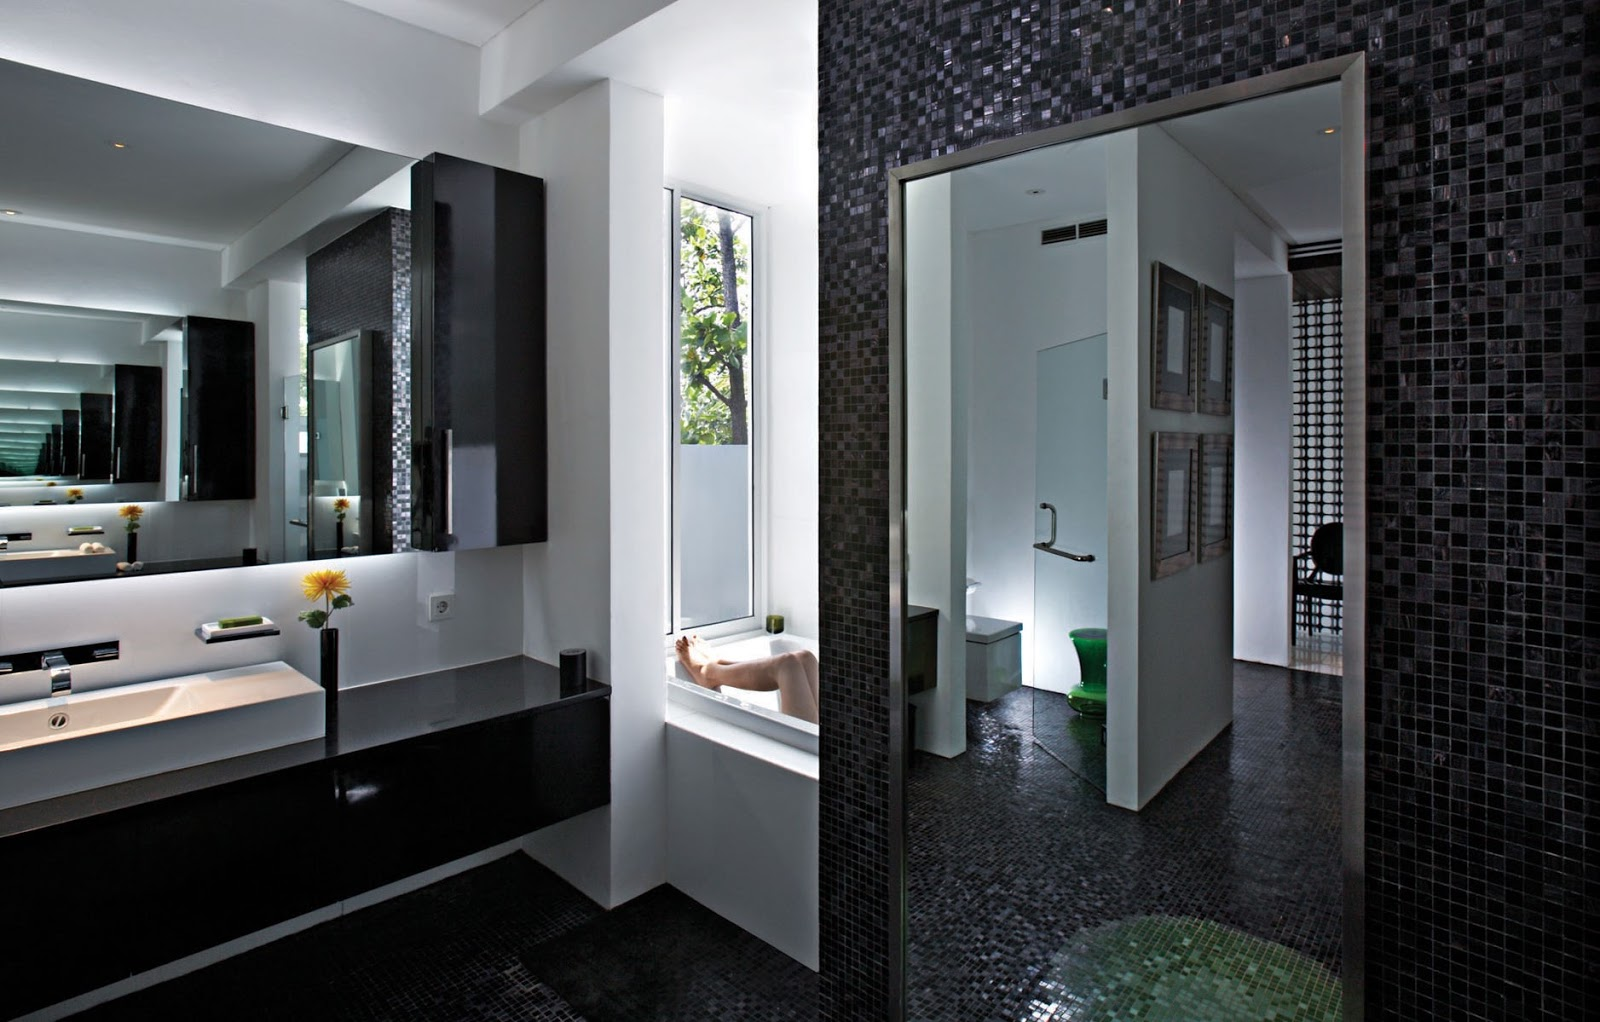 minimalist modern black bathroom design ideas art home design ideas mix black with other colors will be very helpful minimalist bathroom look more beautiful following some example black bathroom inspiration